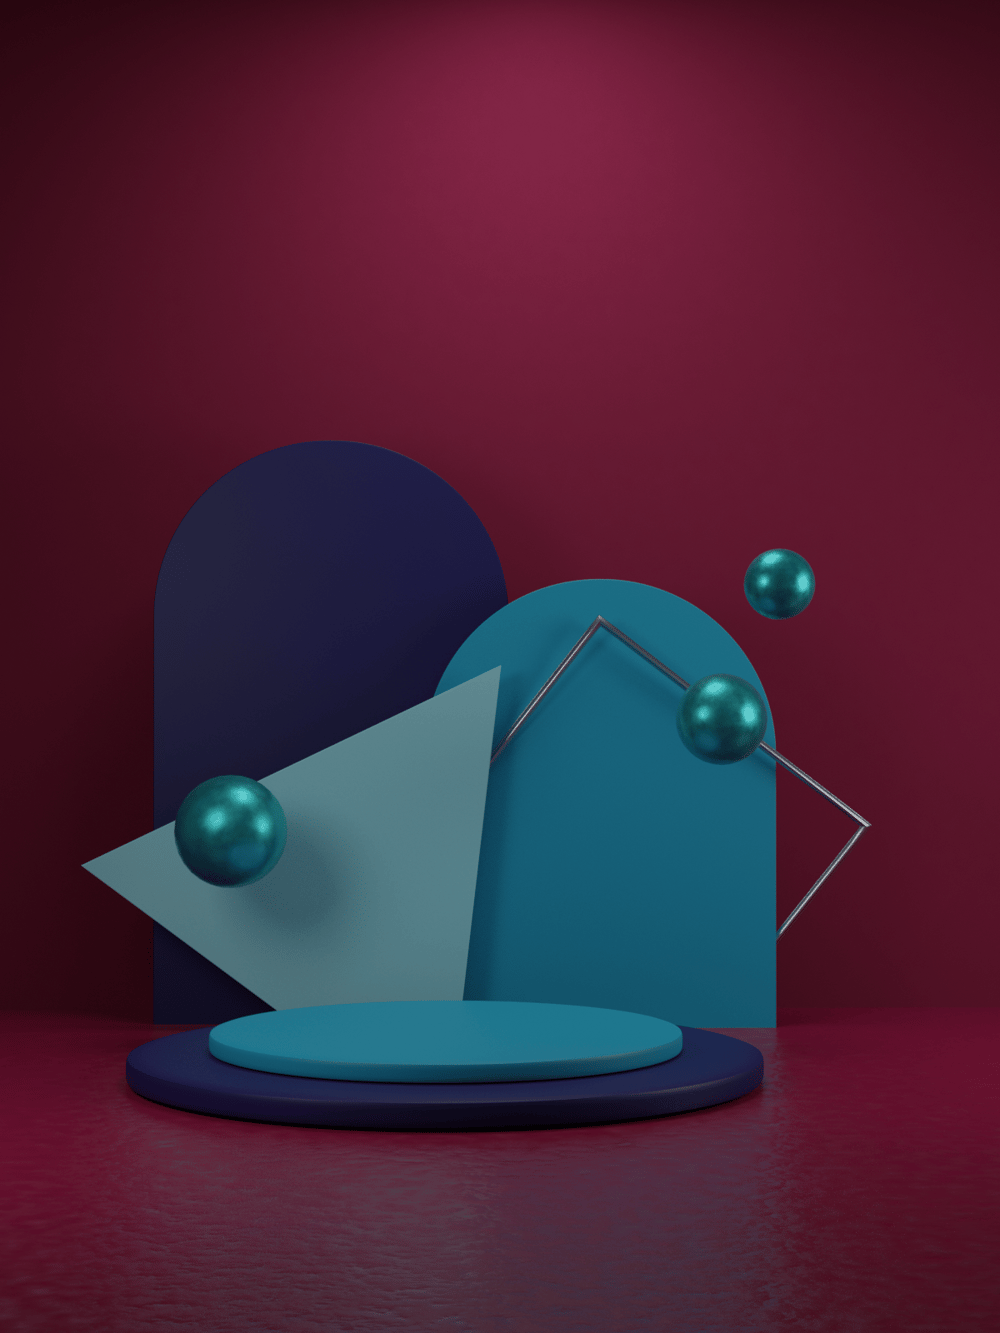 MY FIRST RENDER. - image 1 - student project